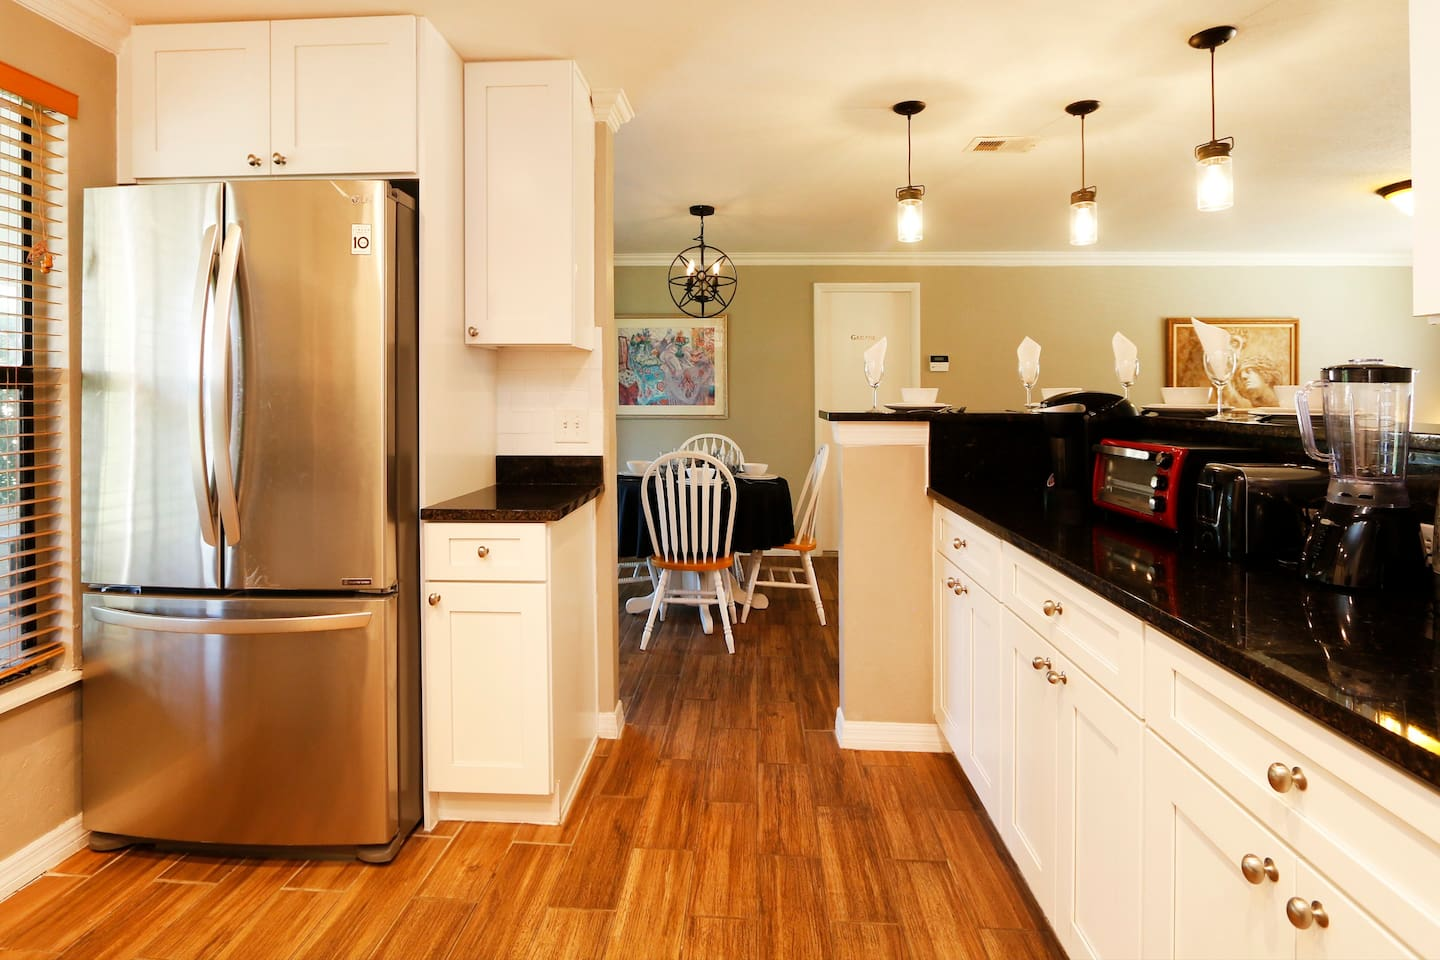 Refrigerator to store food for your entire stay